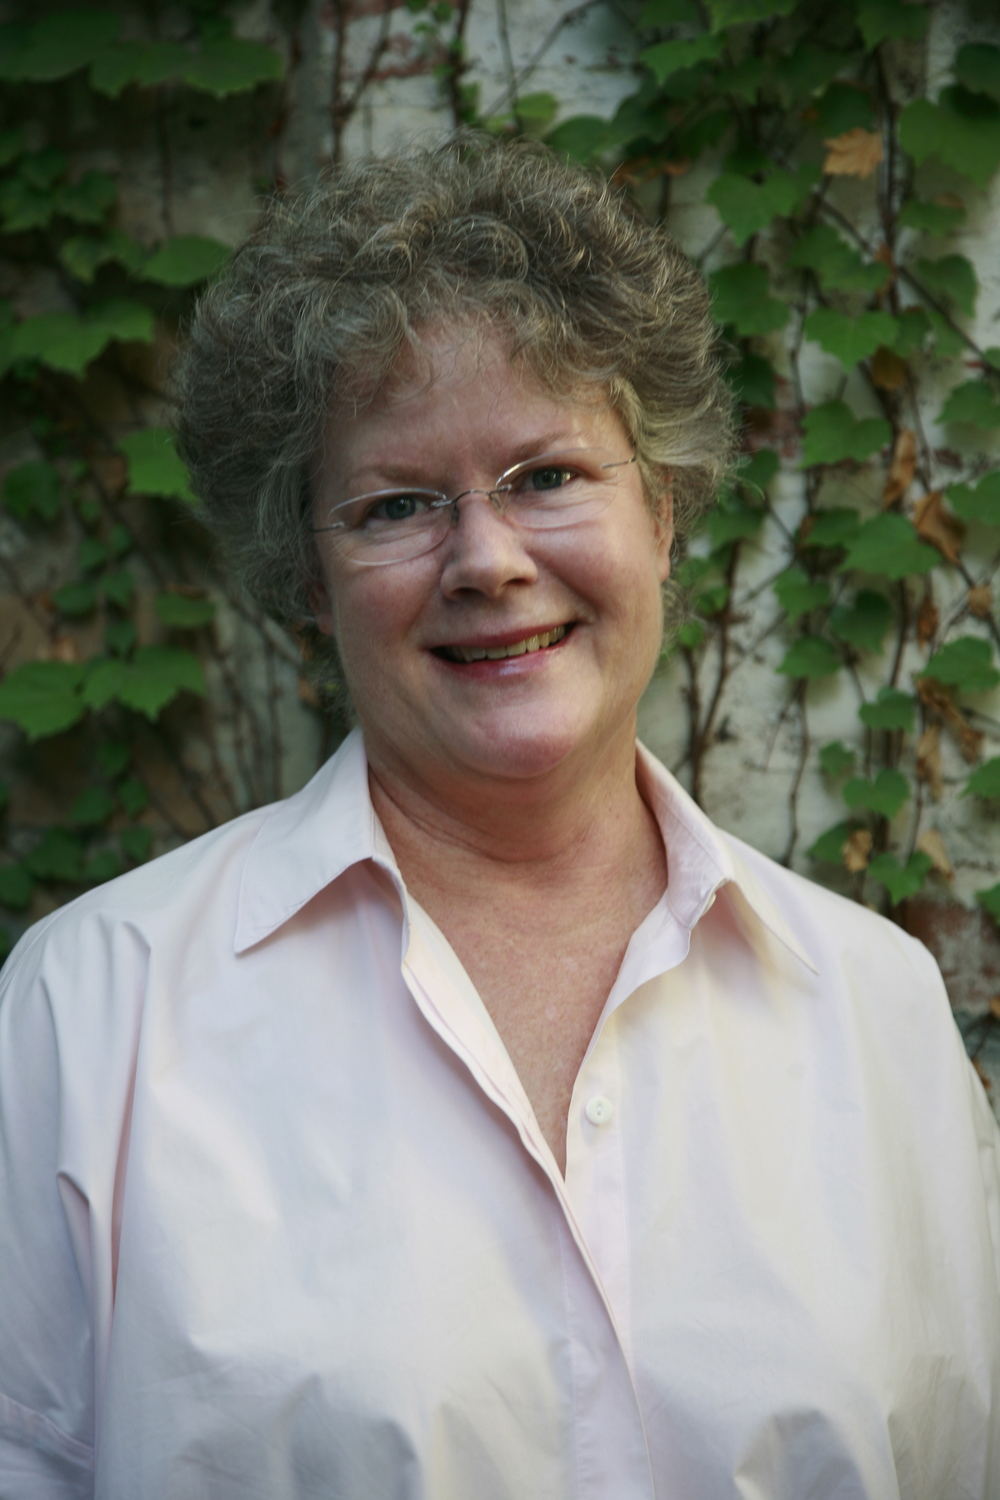 Suzy Lawton, Owner